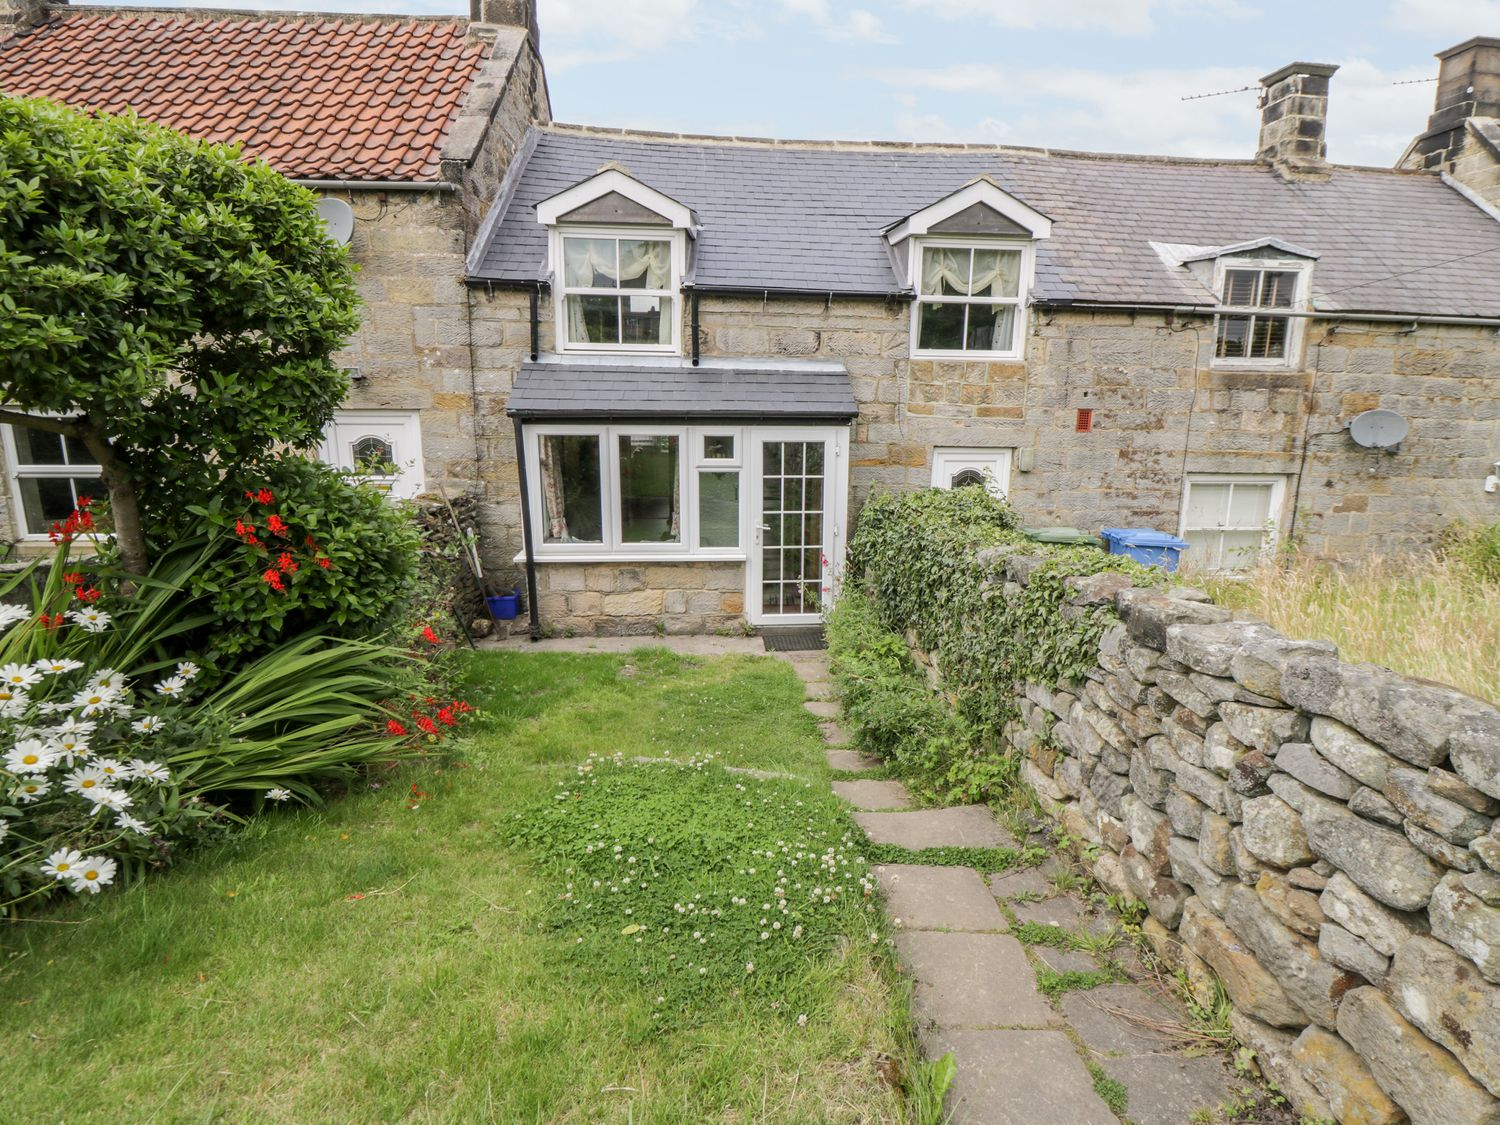 7 Lilac Terrace - Whitby & North Yorkshire - 1044845 - photo 1